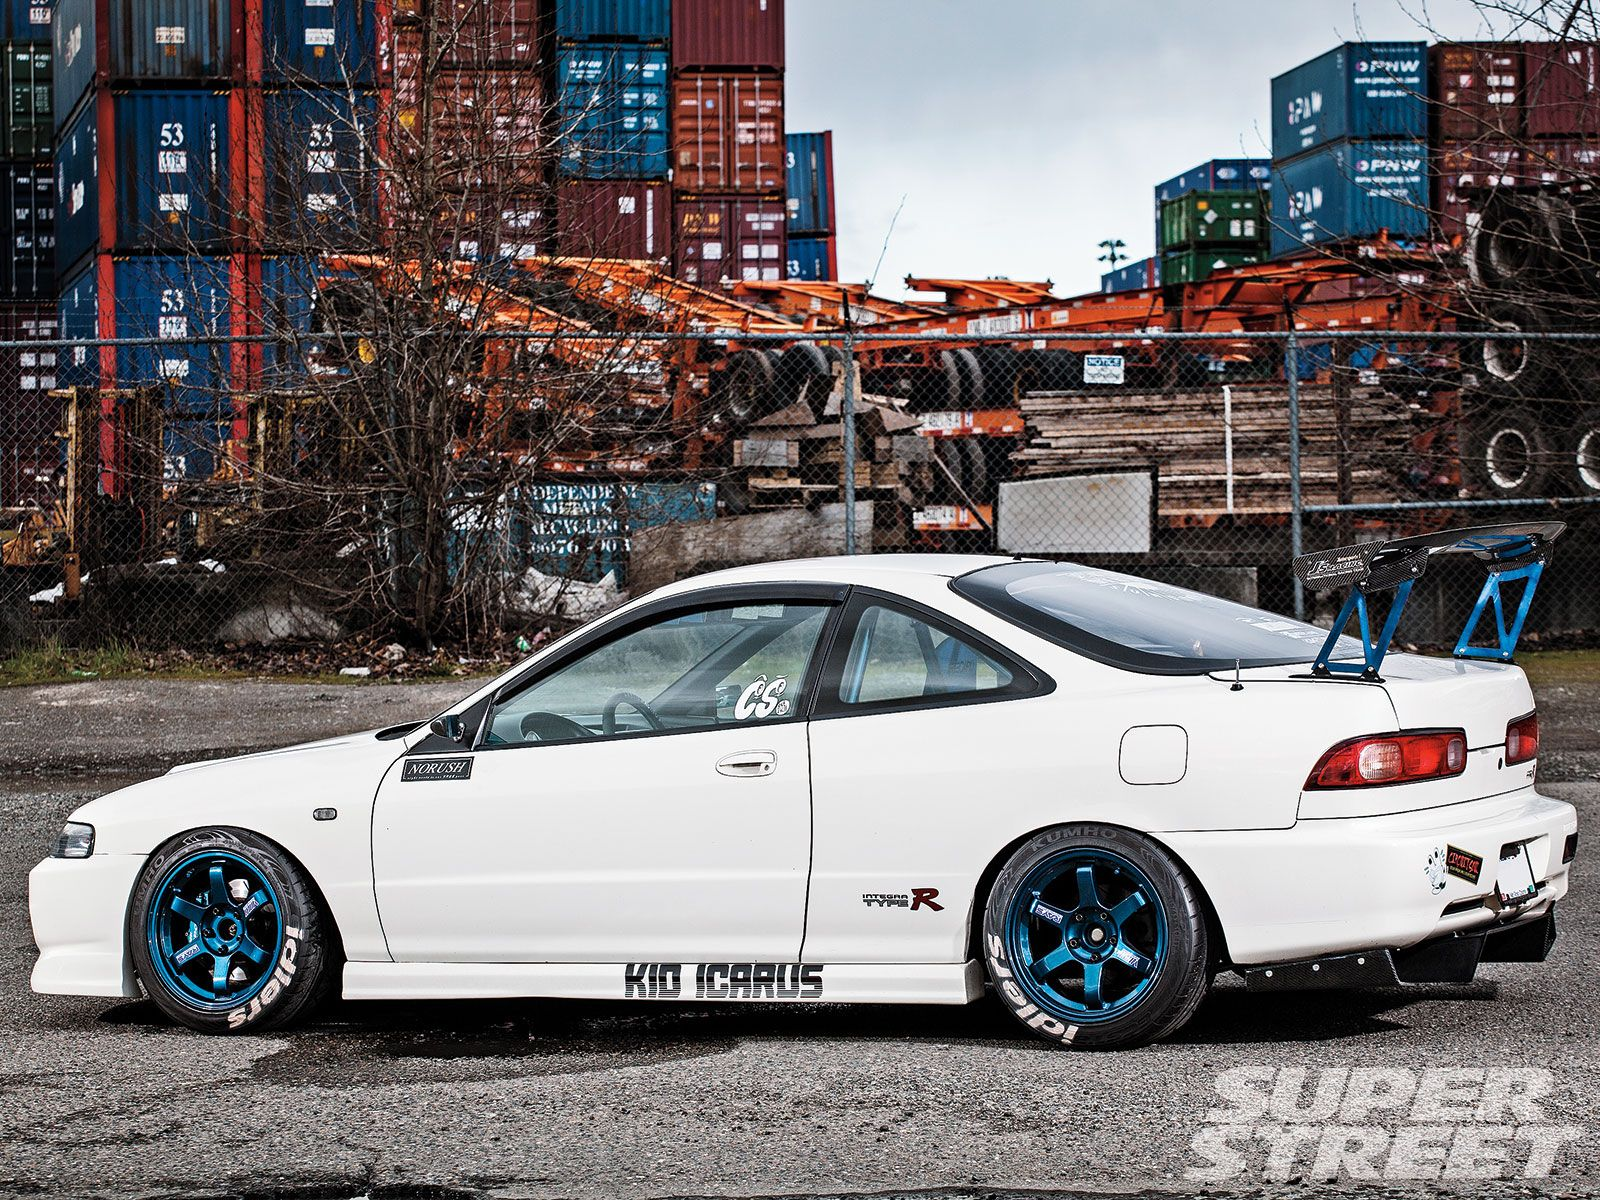 A bit much but still bangin Type R Integra on that race game